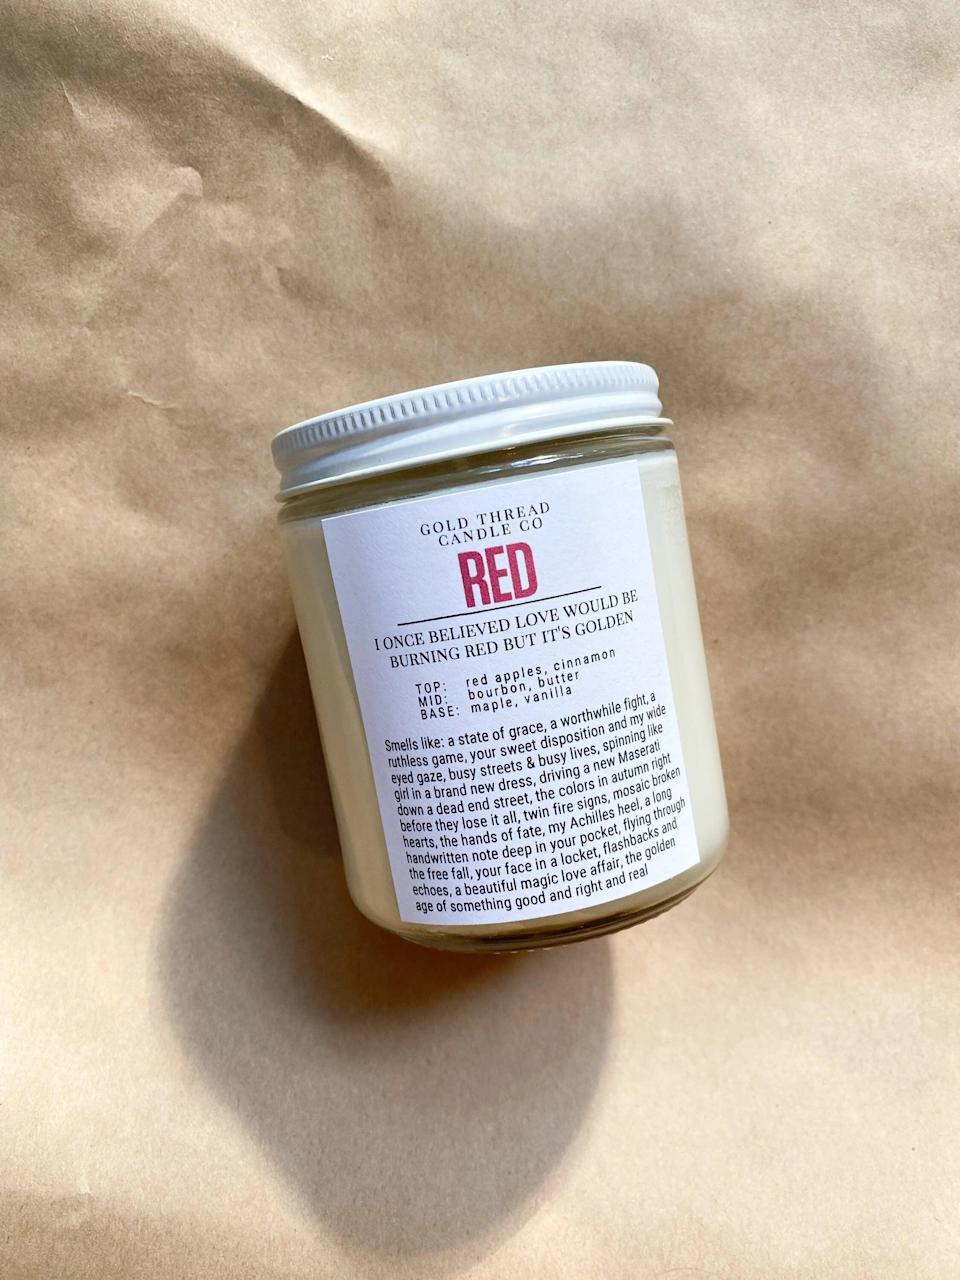 """<p>If the Swiftie in your life is embracing their <b>Red</b> era, they'll love this <span><b>Red</b> Candle</span> ($20). It smells like apple and maple bourbon. The seller has a ton of other candles inspired by <a class=""""link rapid-noclick-resp"""" href=""""https://www.popsugar.com/Taylor-Swift"""" rel=""""nofollow noopener"""" target=""""_blank"""" data-ylk=""""slk:Taylor Swift"""">Taylor Swift</a>'s other albums and specific songs as well!</p>"""